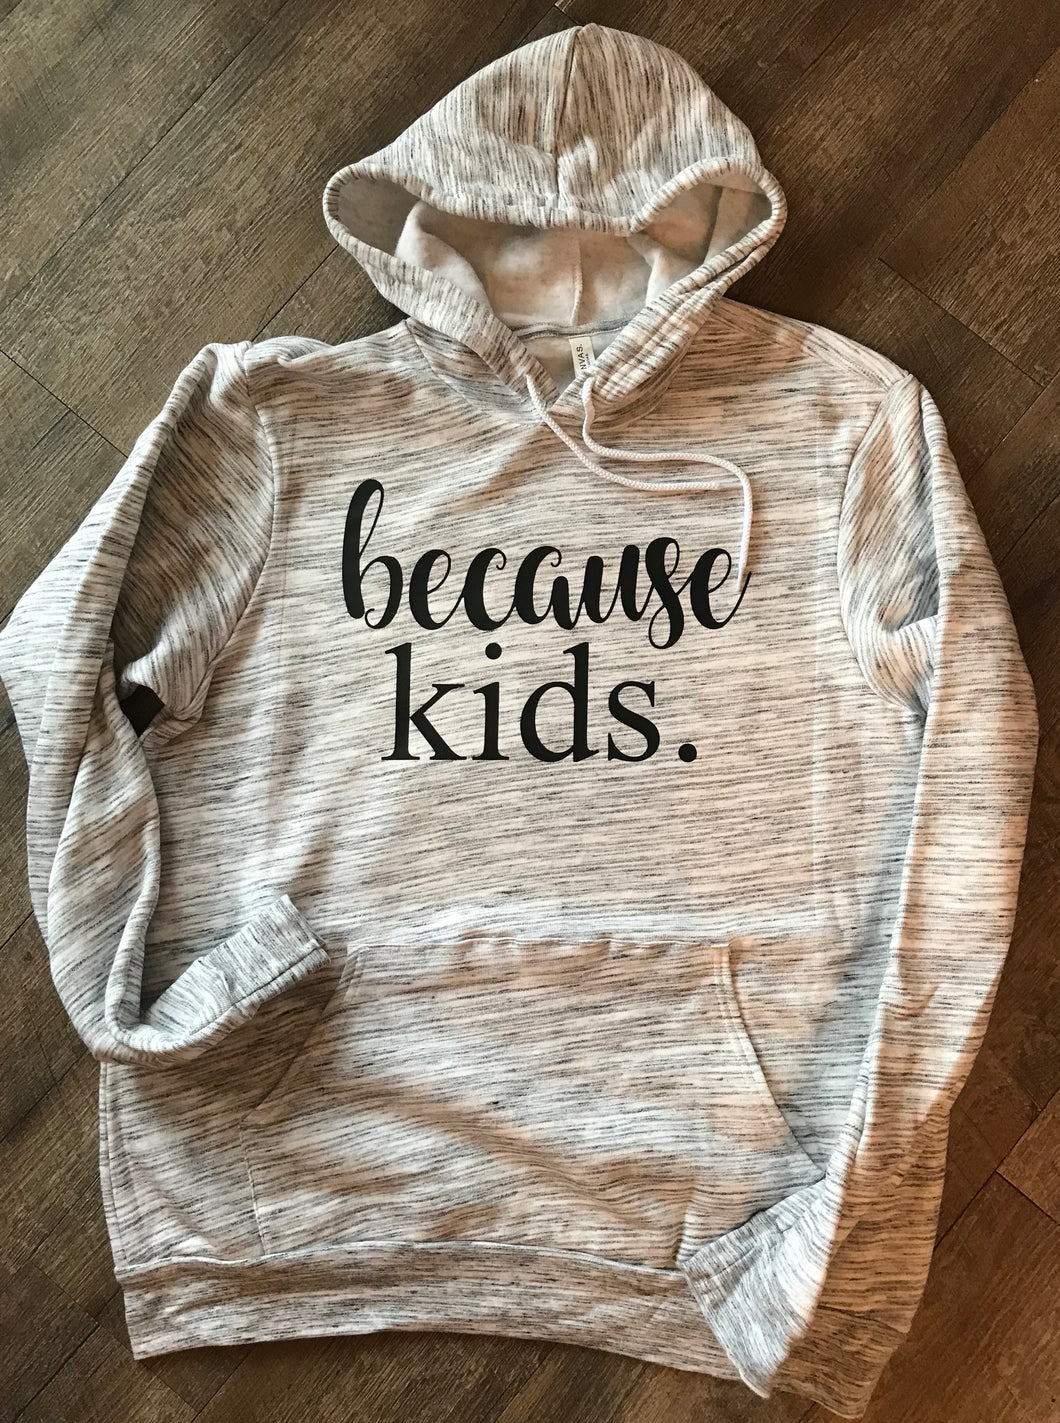 Because kids funny graphic hoodie in marbled white Bella canvas - Mavictoria Designs Hot Press Express